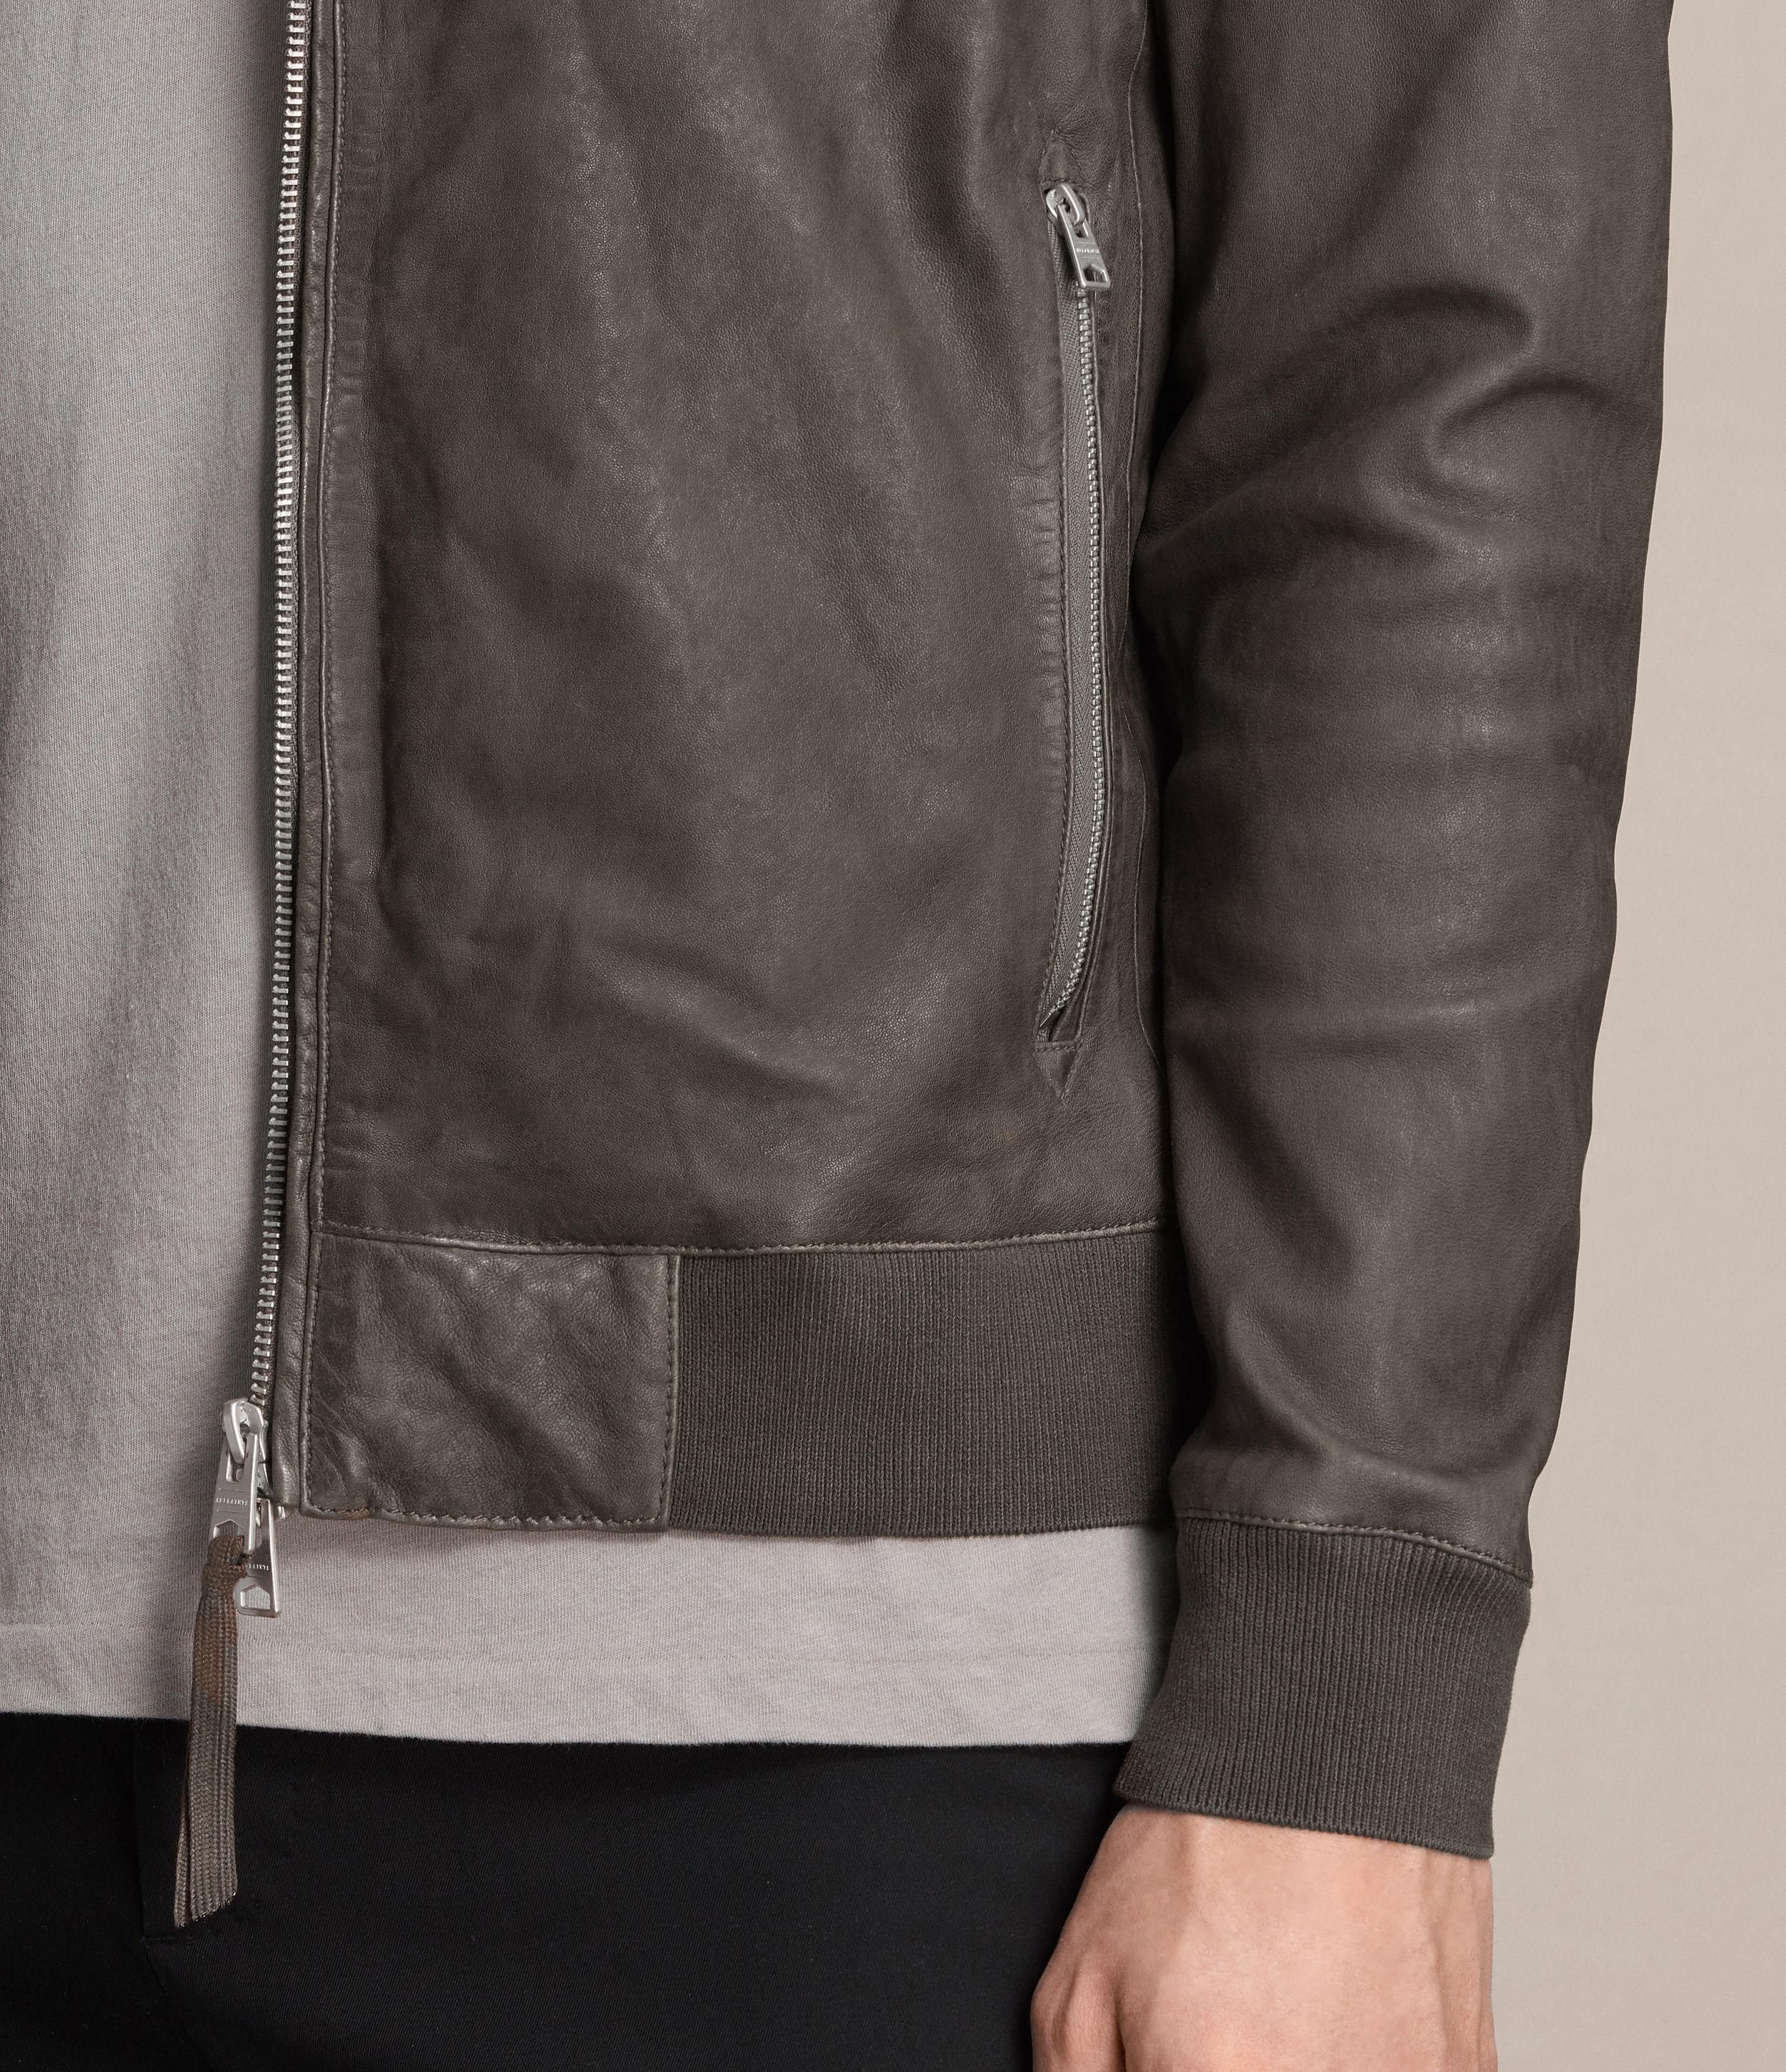 Barbour Sapper Jacket >> AllSaints Kino Leather Bomber Jacket in Gray for Men - Lyst